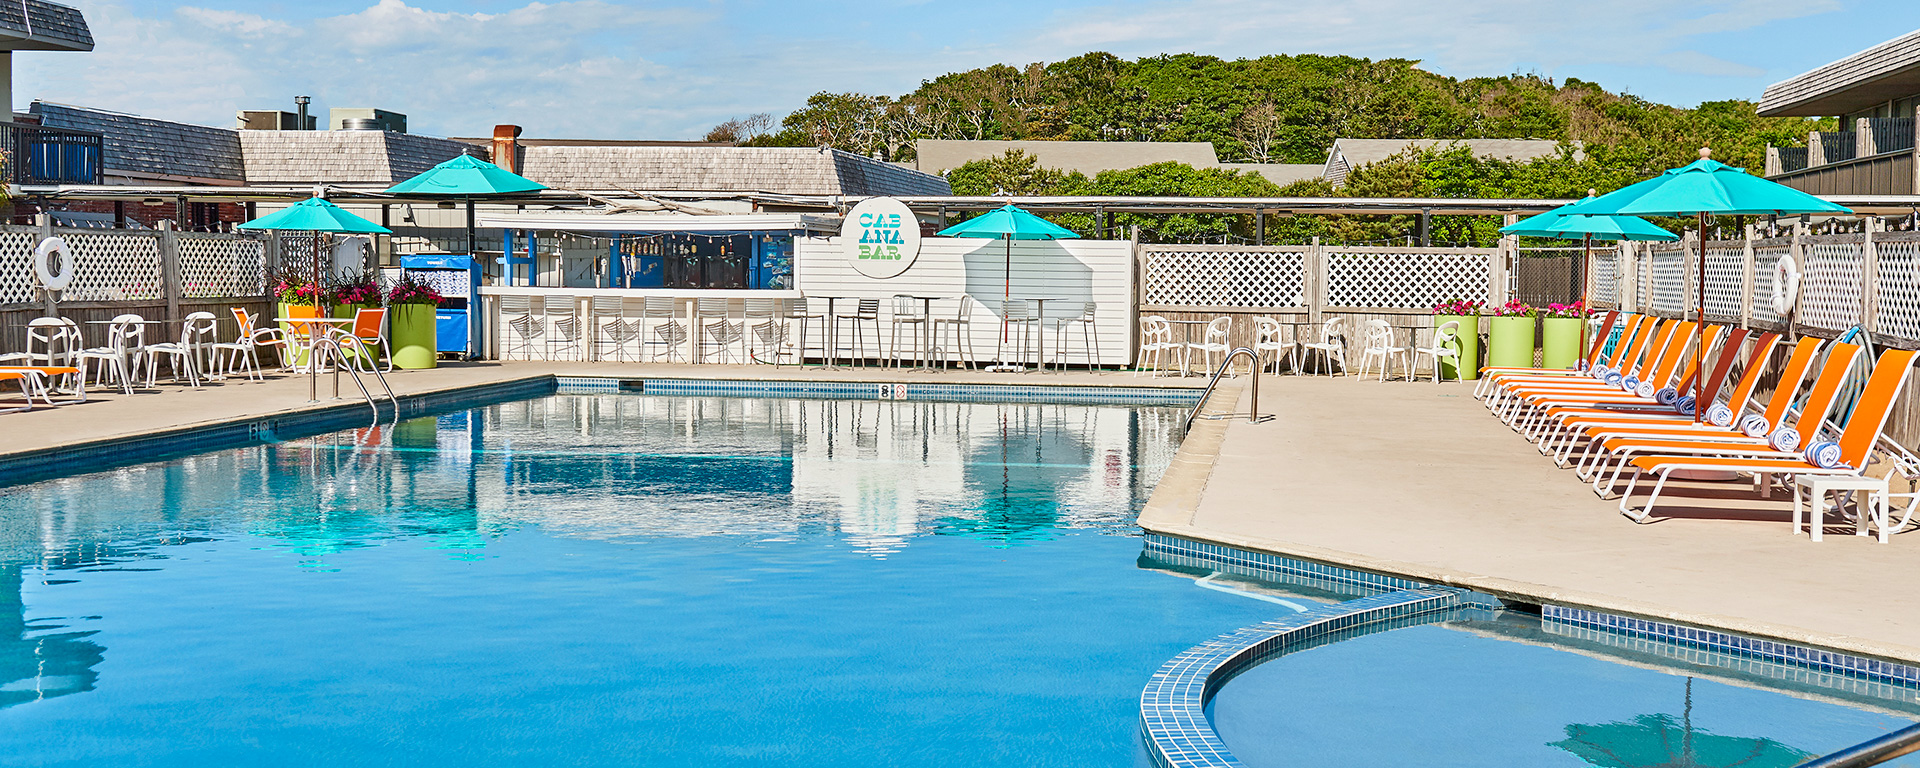 Amenities at Harbor Hotel Provincetown